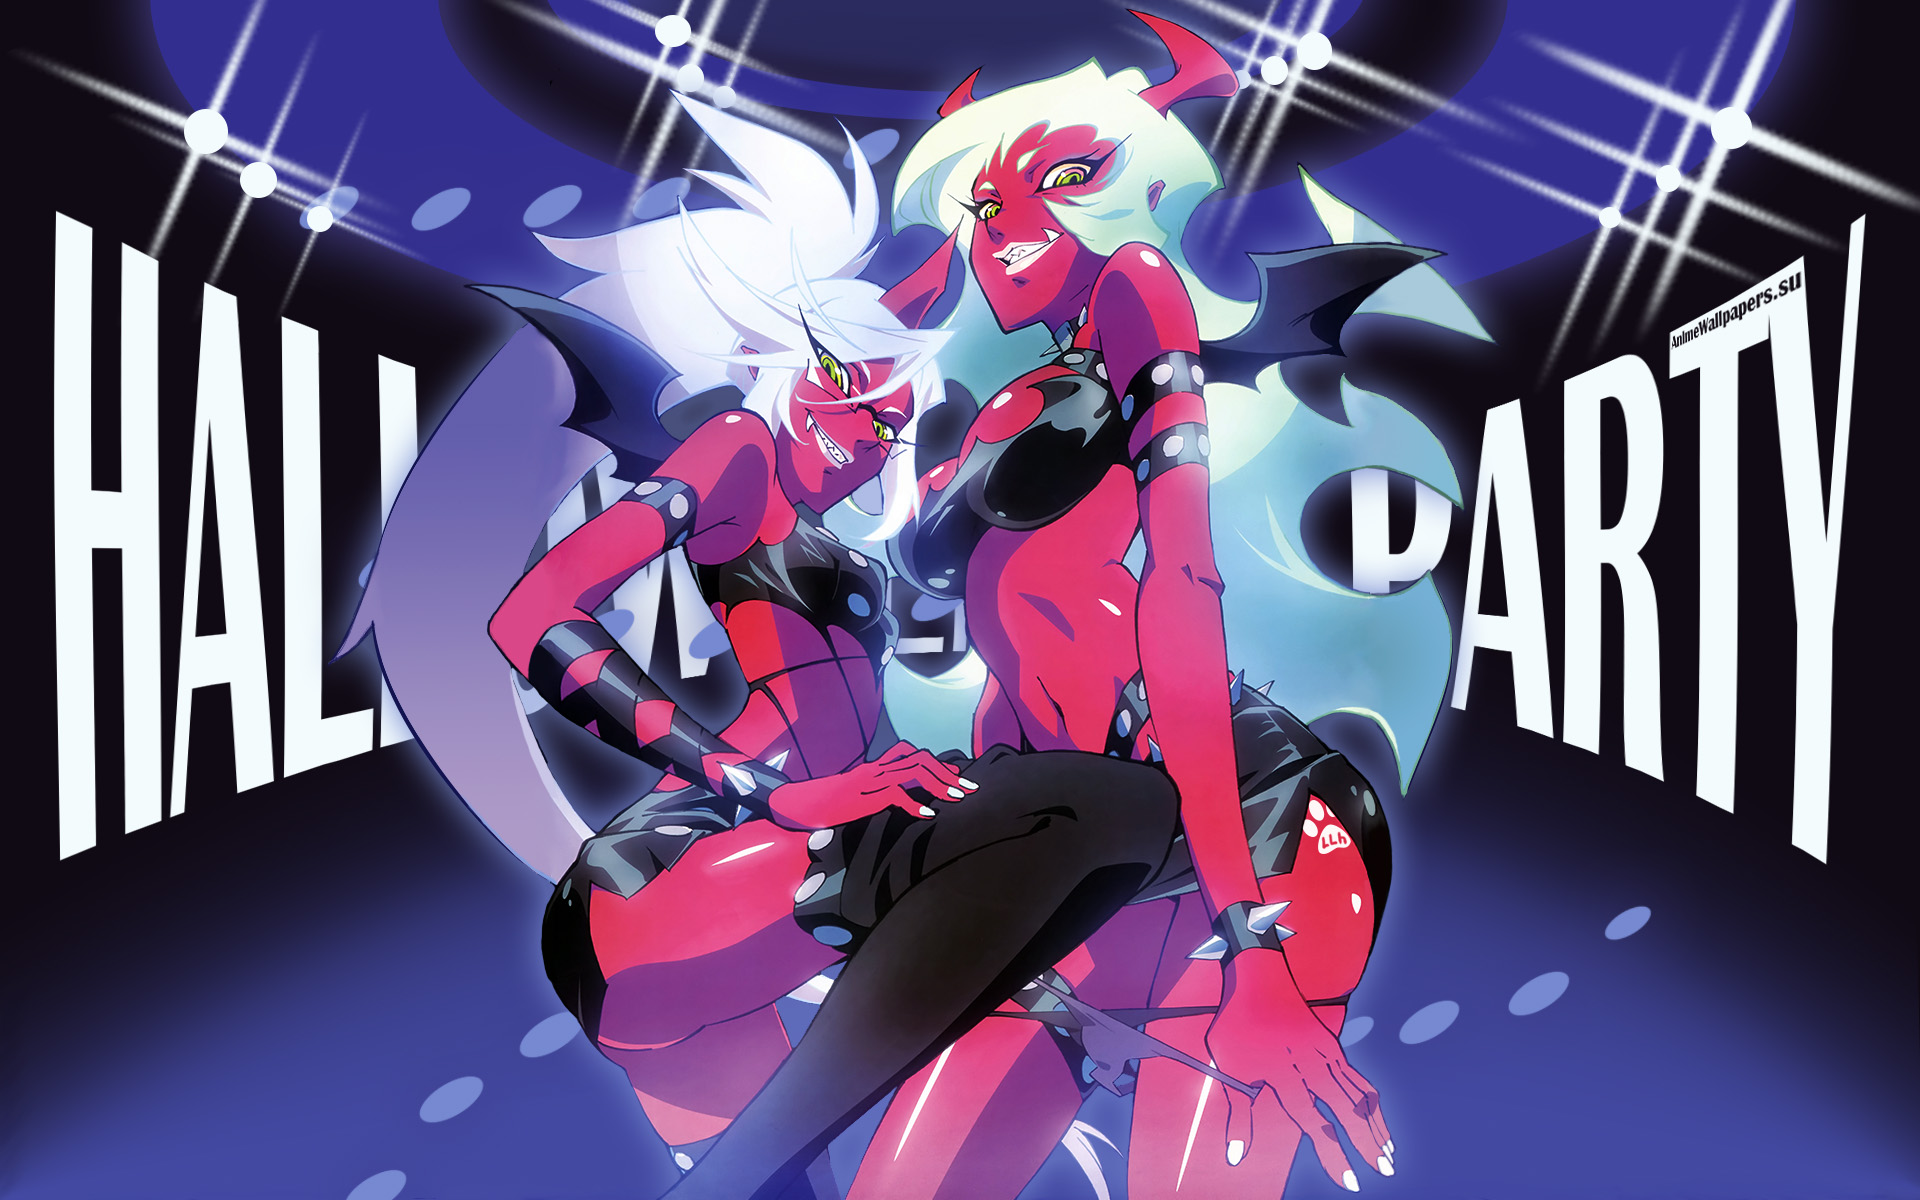 Panty and Stocking with Garterbelt [1]